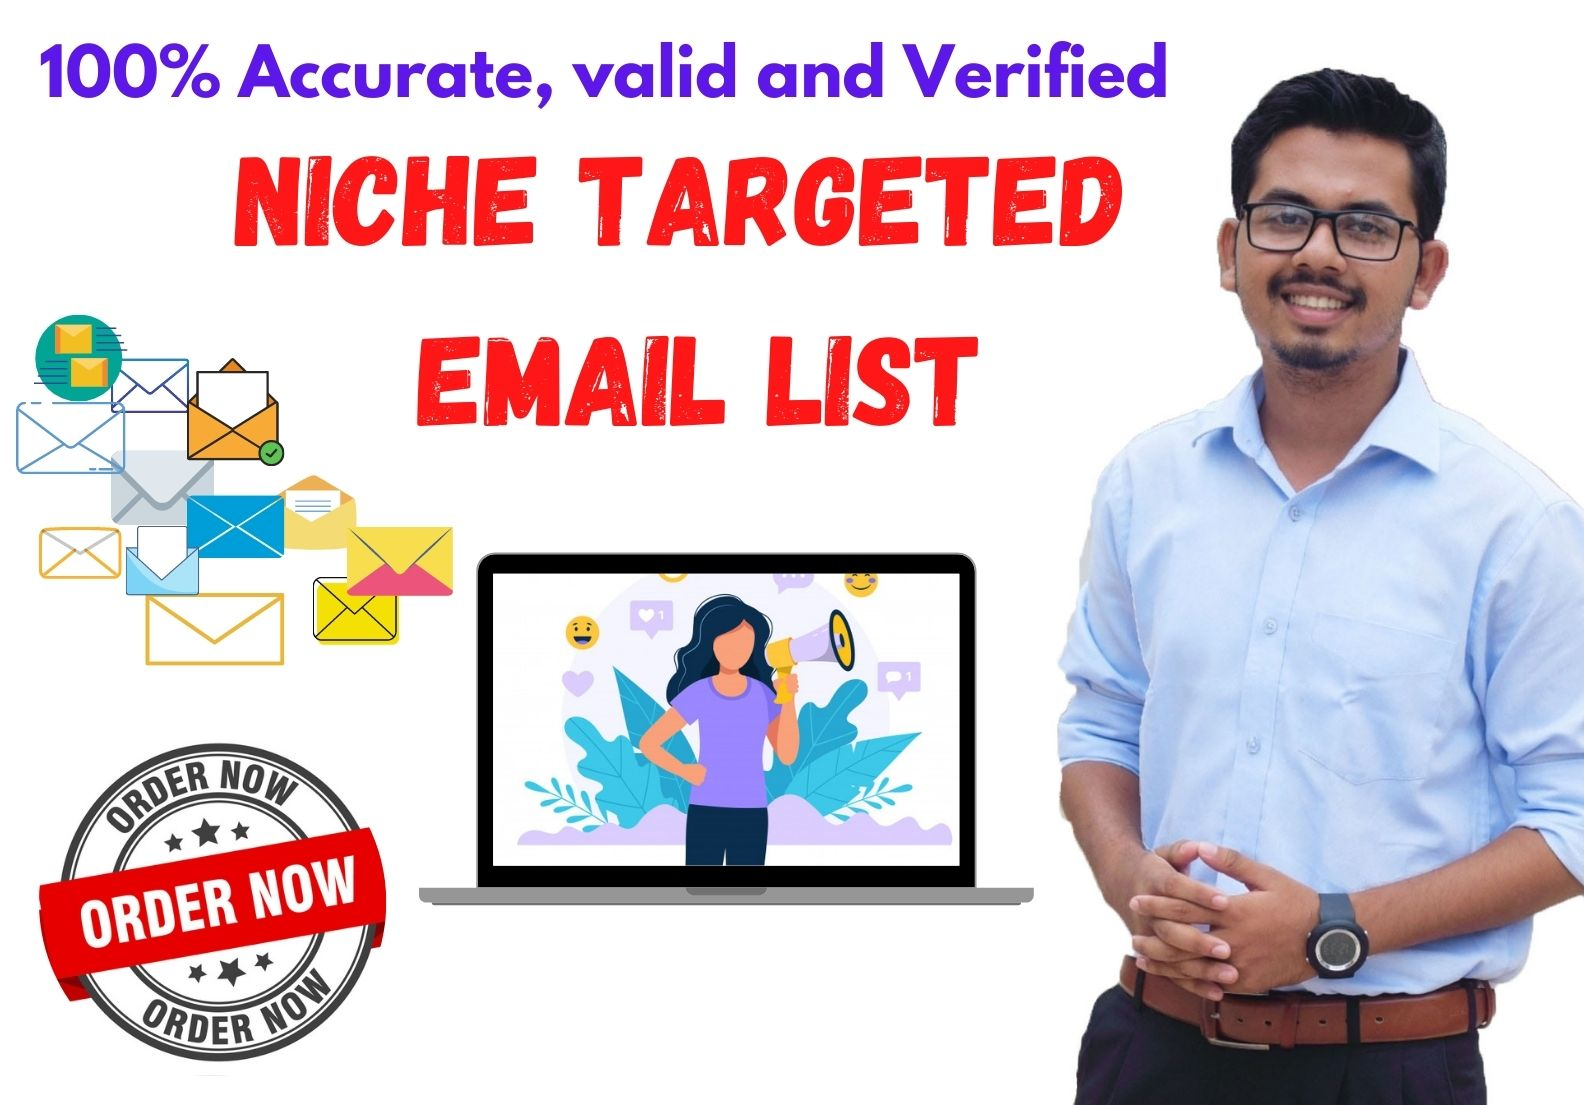 Get niche targeted 5k Active Email list for Branding Your Business Effectively